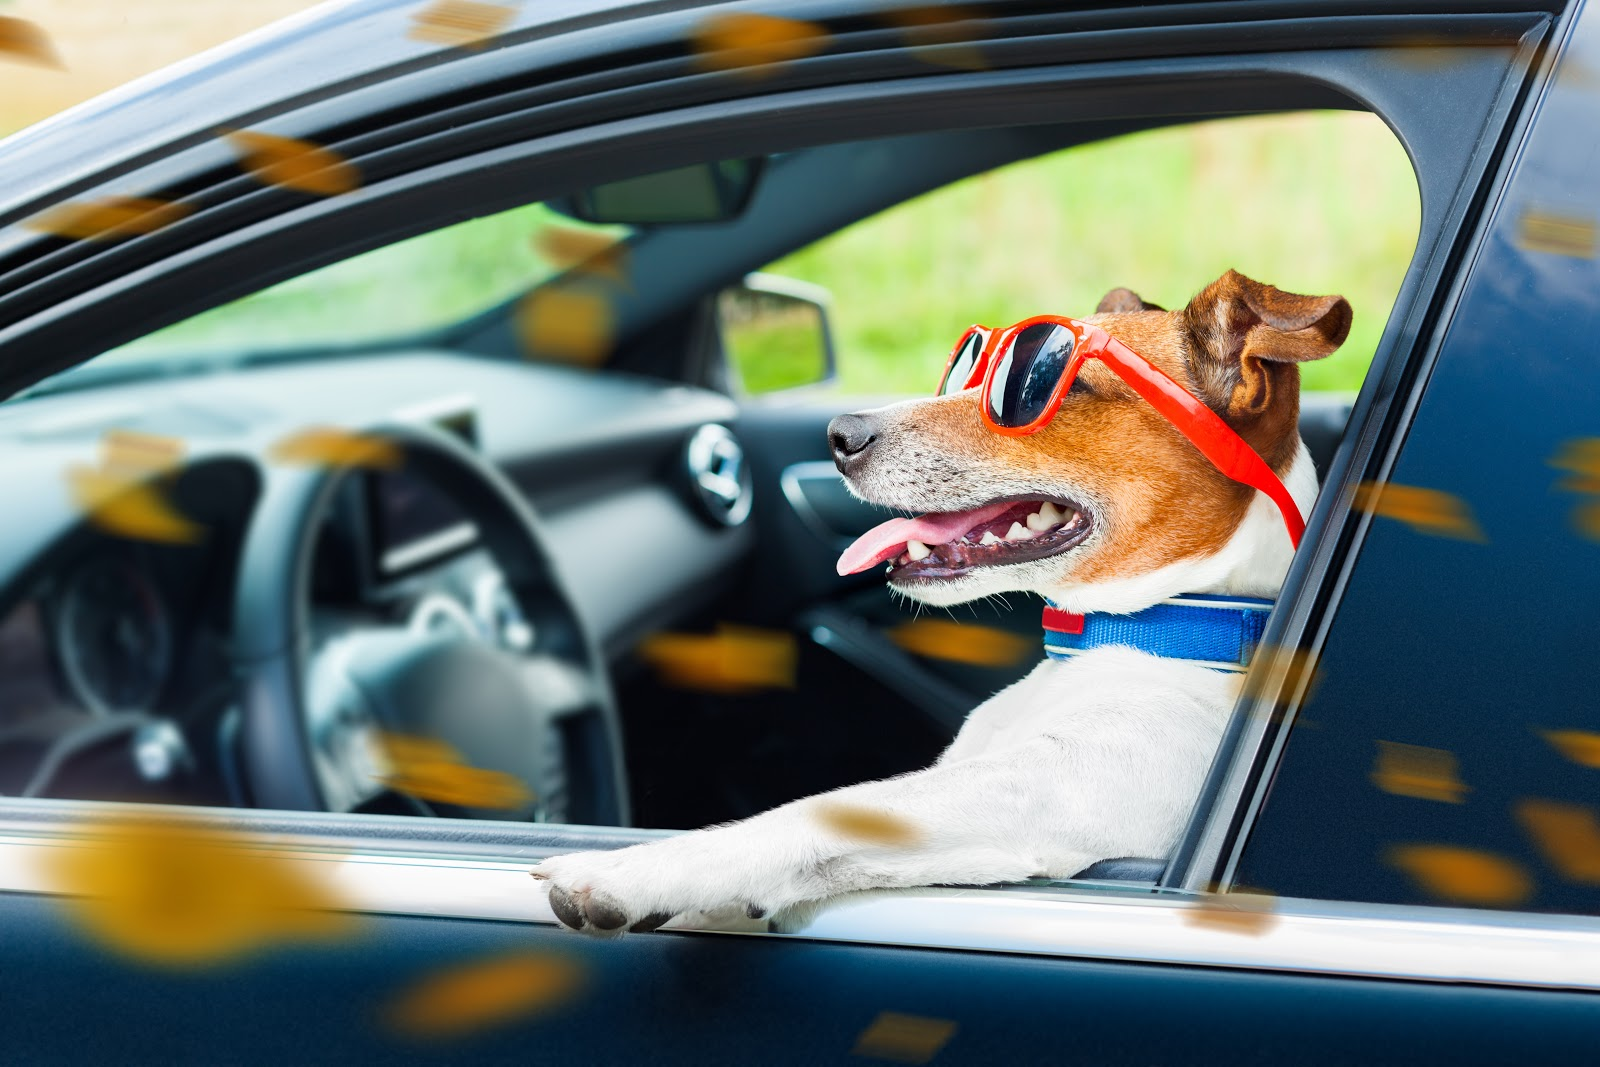 Dog driving the car with head out of the window and red sunglasses on.